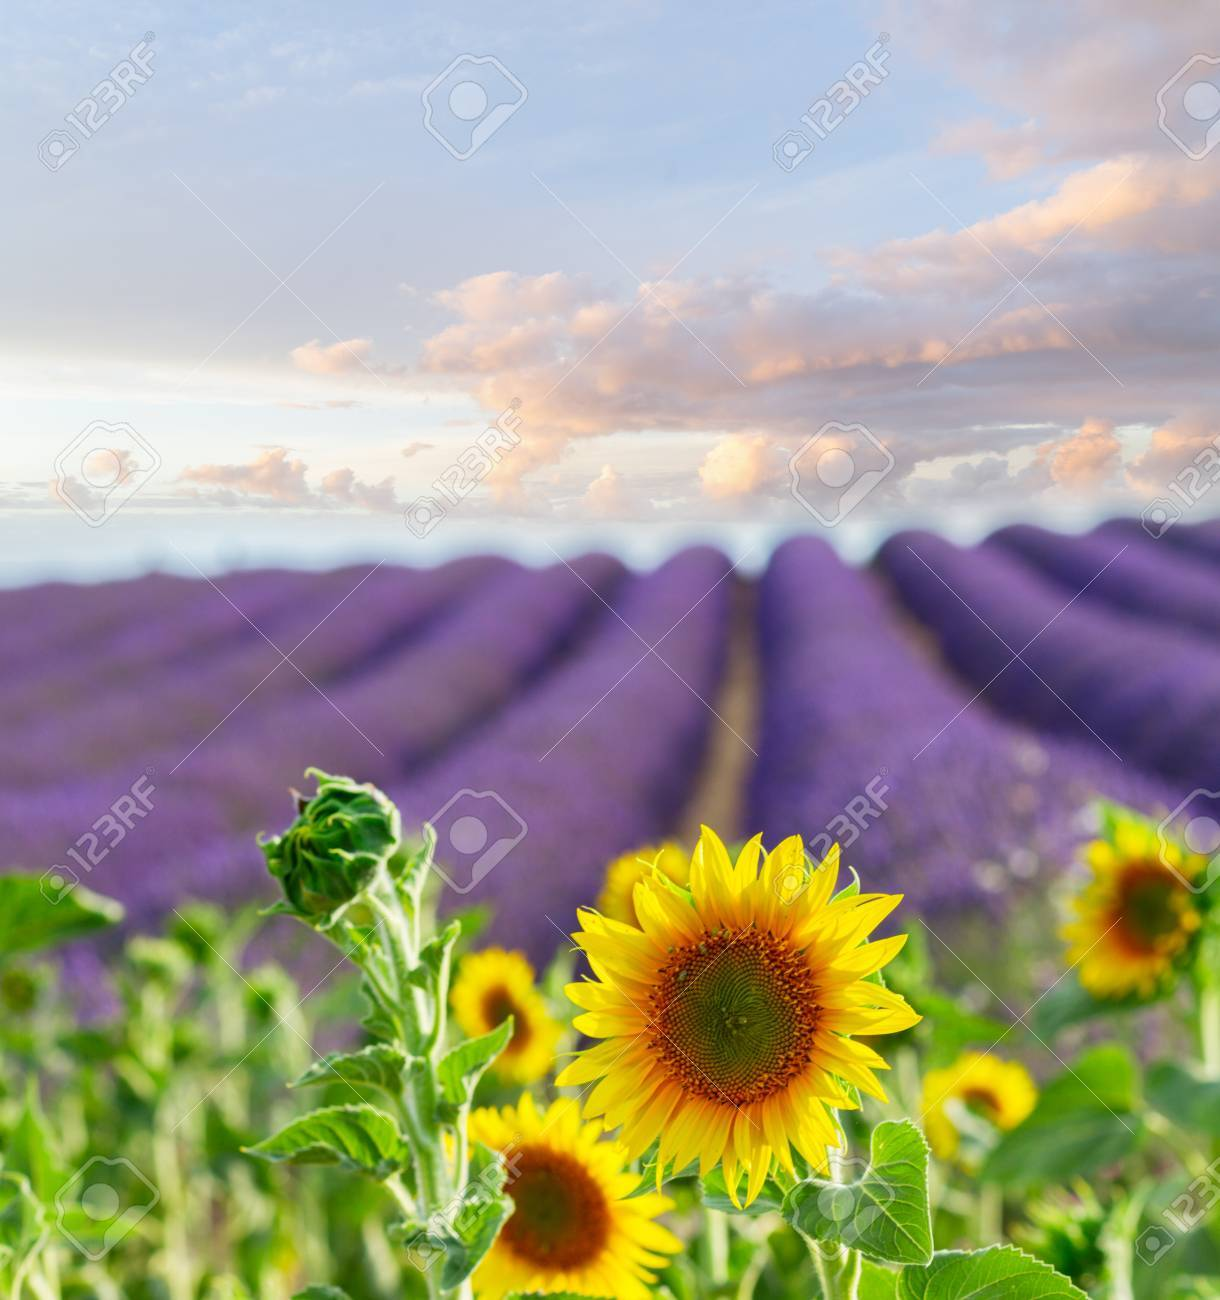 Sunflowers And Rows Of Lavender Flowers Summer Field At Sunrise France Stock Photo